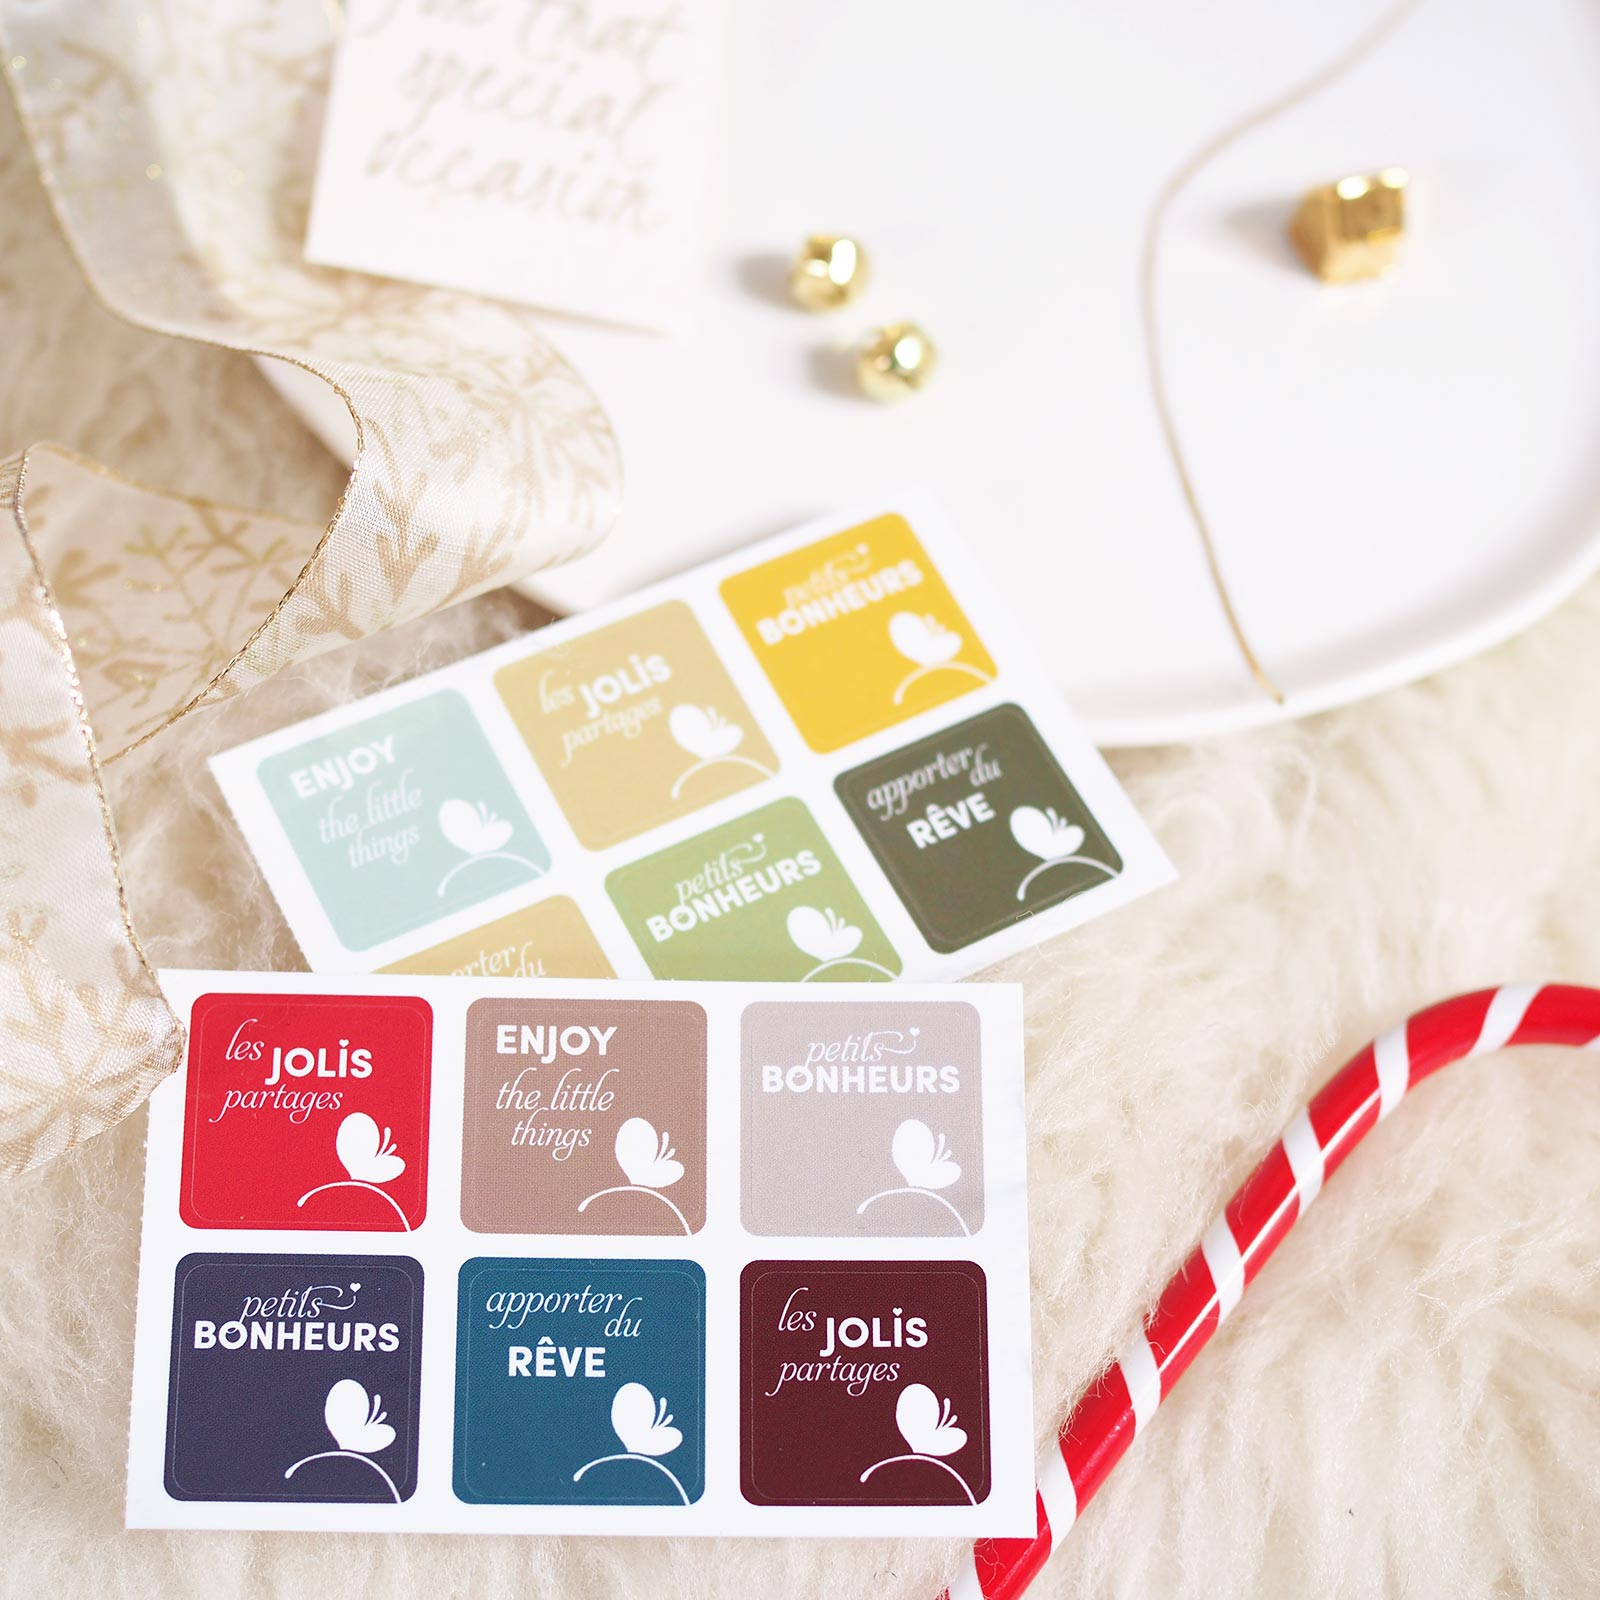 etiquette sticker moocards cadeau branding packaging laboutiquedemelimelo